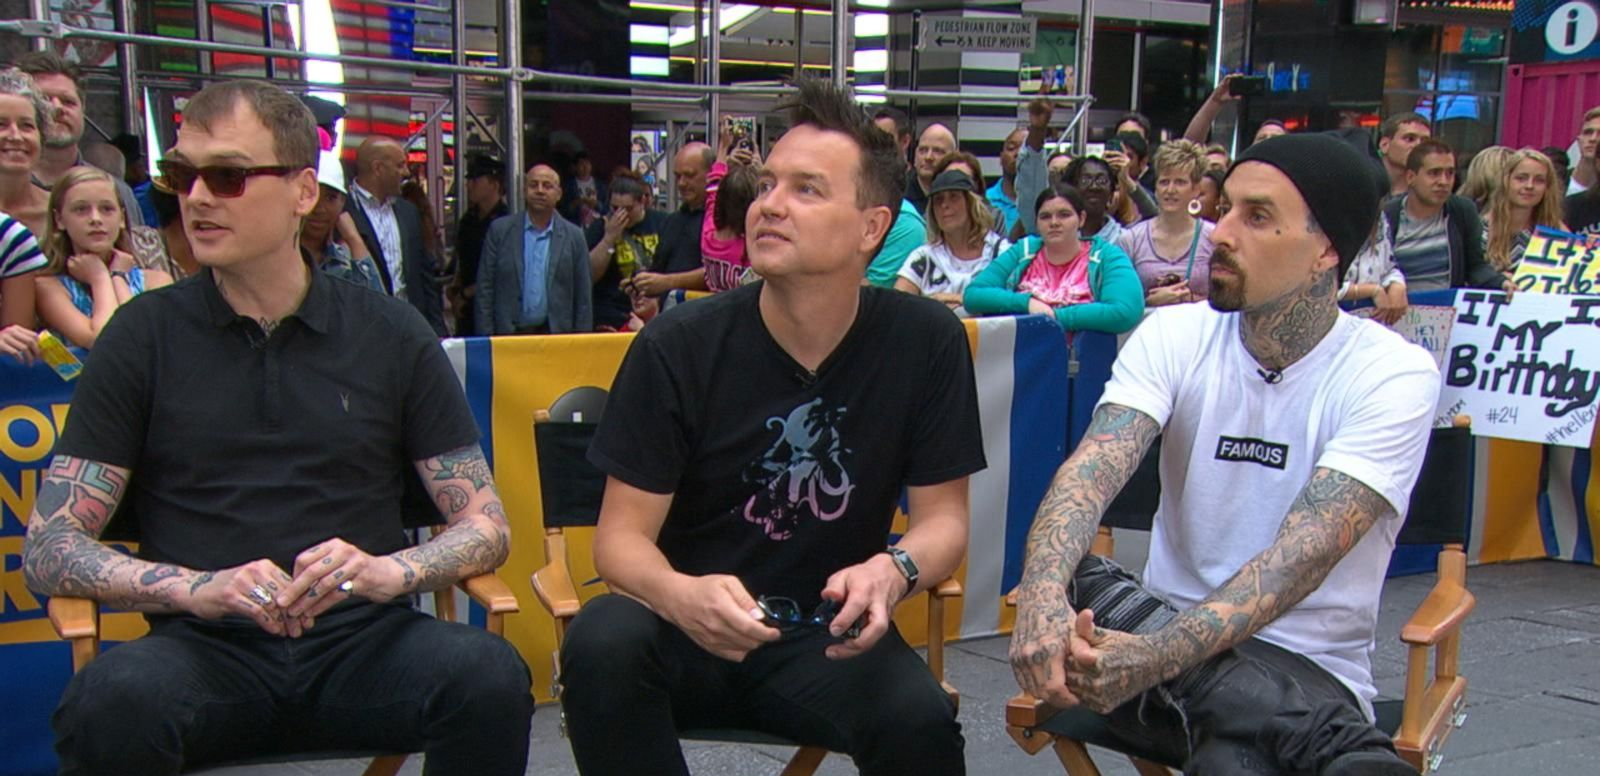 VIDEO: Blink 182 Opens Up on 'GMA' About Changes, Big Comeback